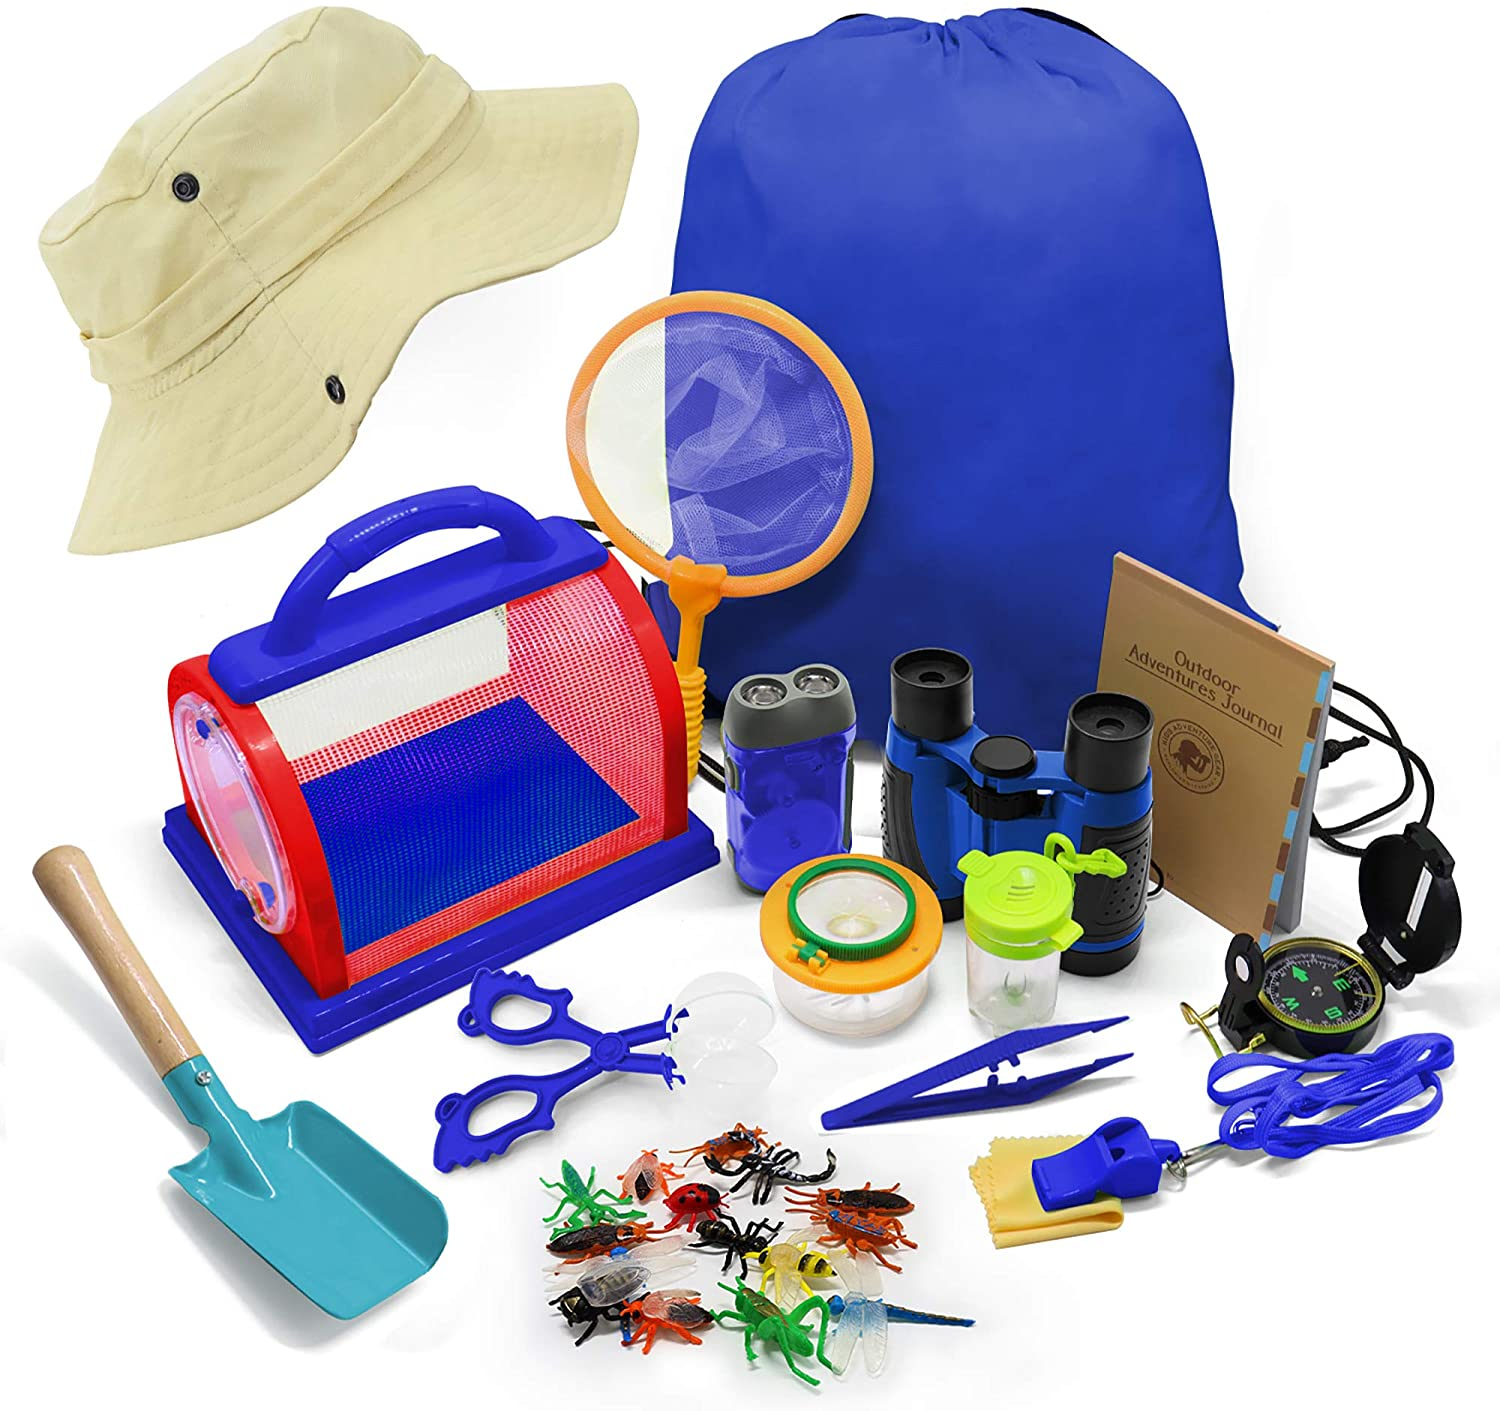 30PCS Outdoor Explorer Set Bug Catcher Nature Exploration Kit Insect Observation Tools w/Binoculars Compass Critter Case Educational Toys Kids Gift for Boys & Girls Adventure Camping Hiking Fishing